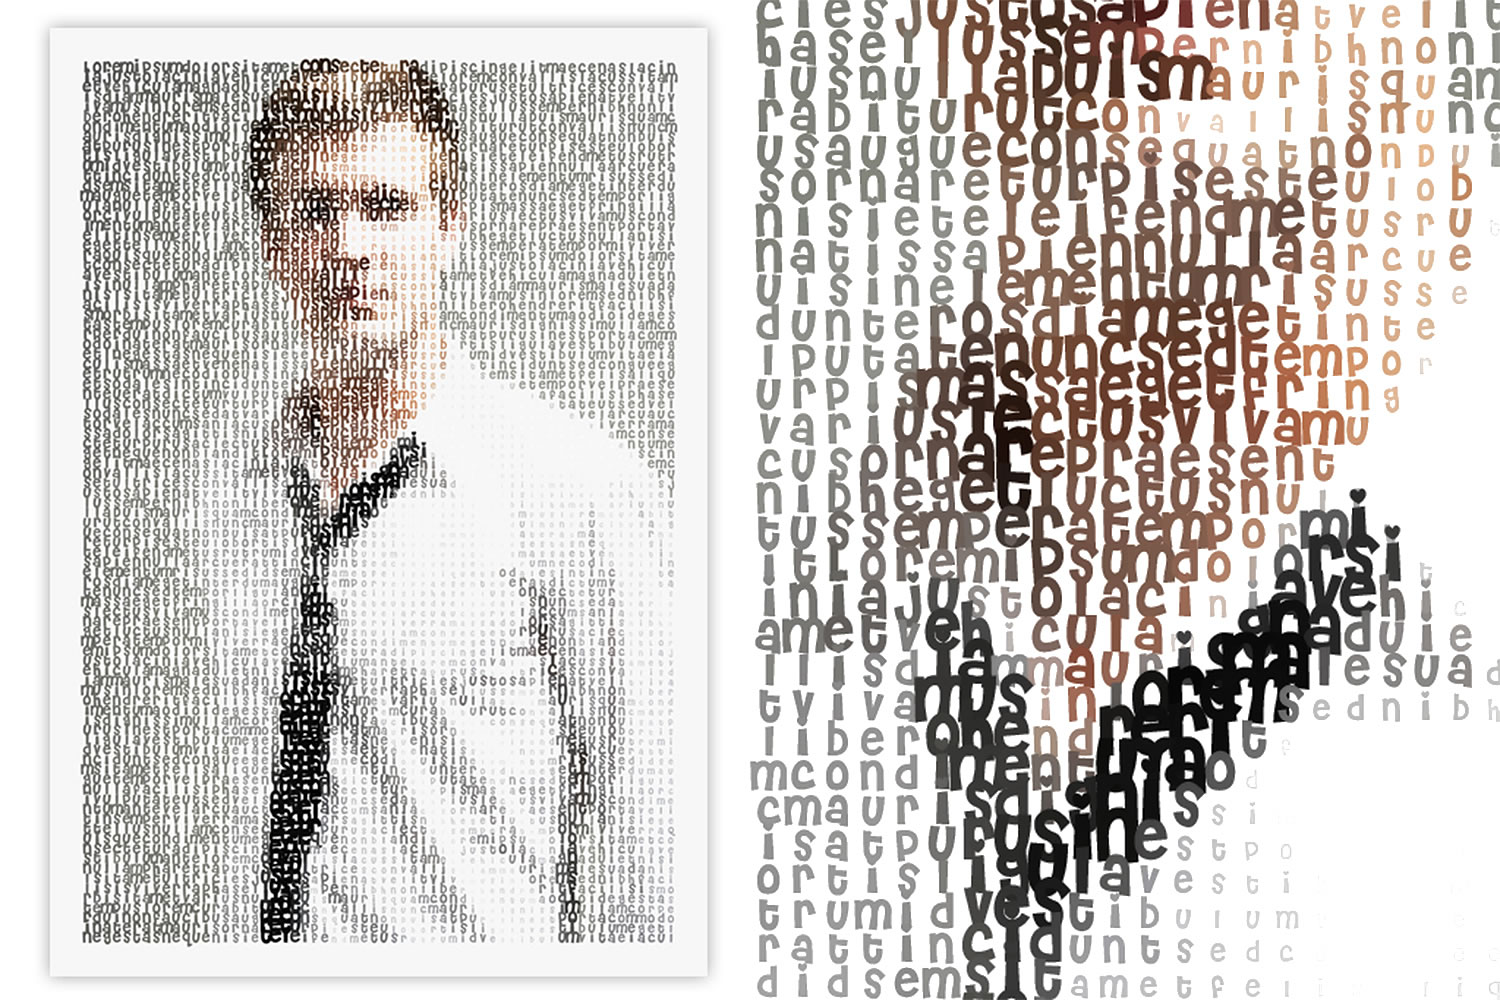 Typographic art, portrait of man with tie, Create Typographic Images with Typo-Painter